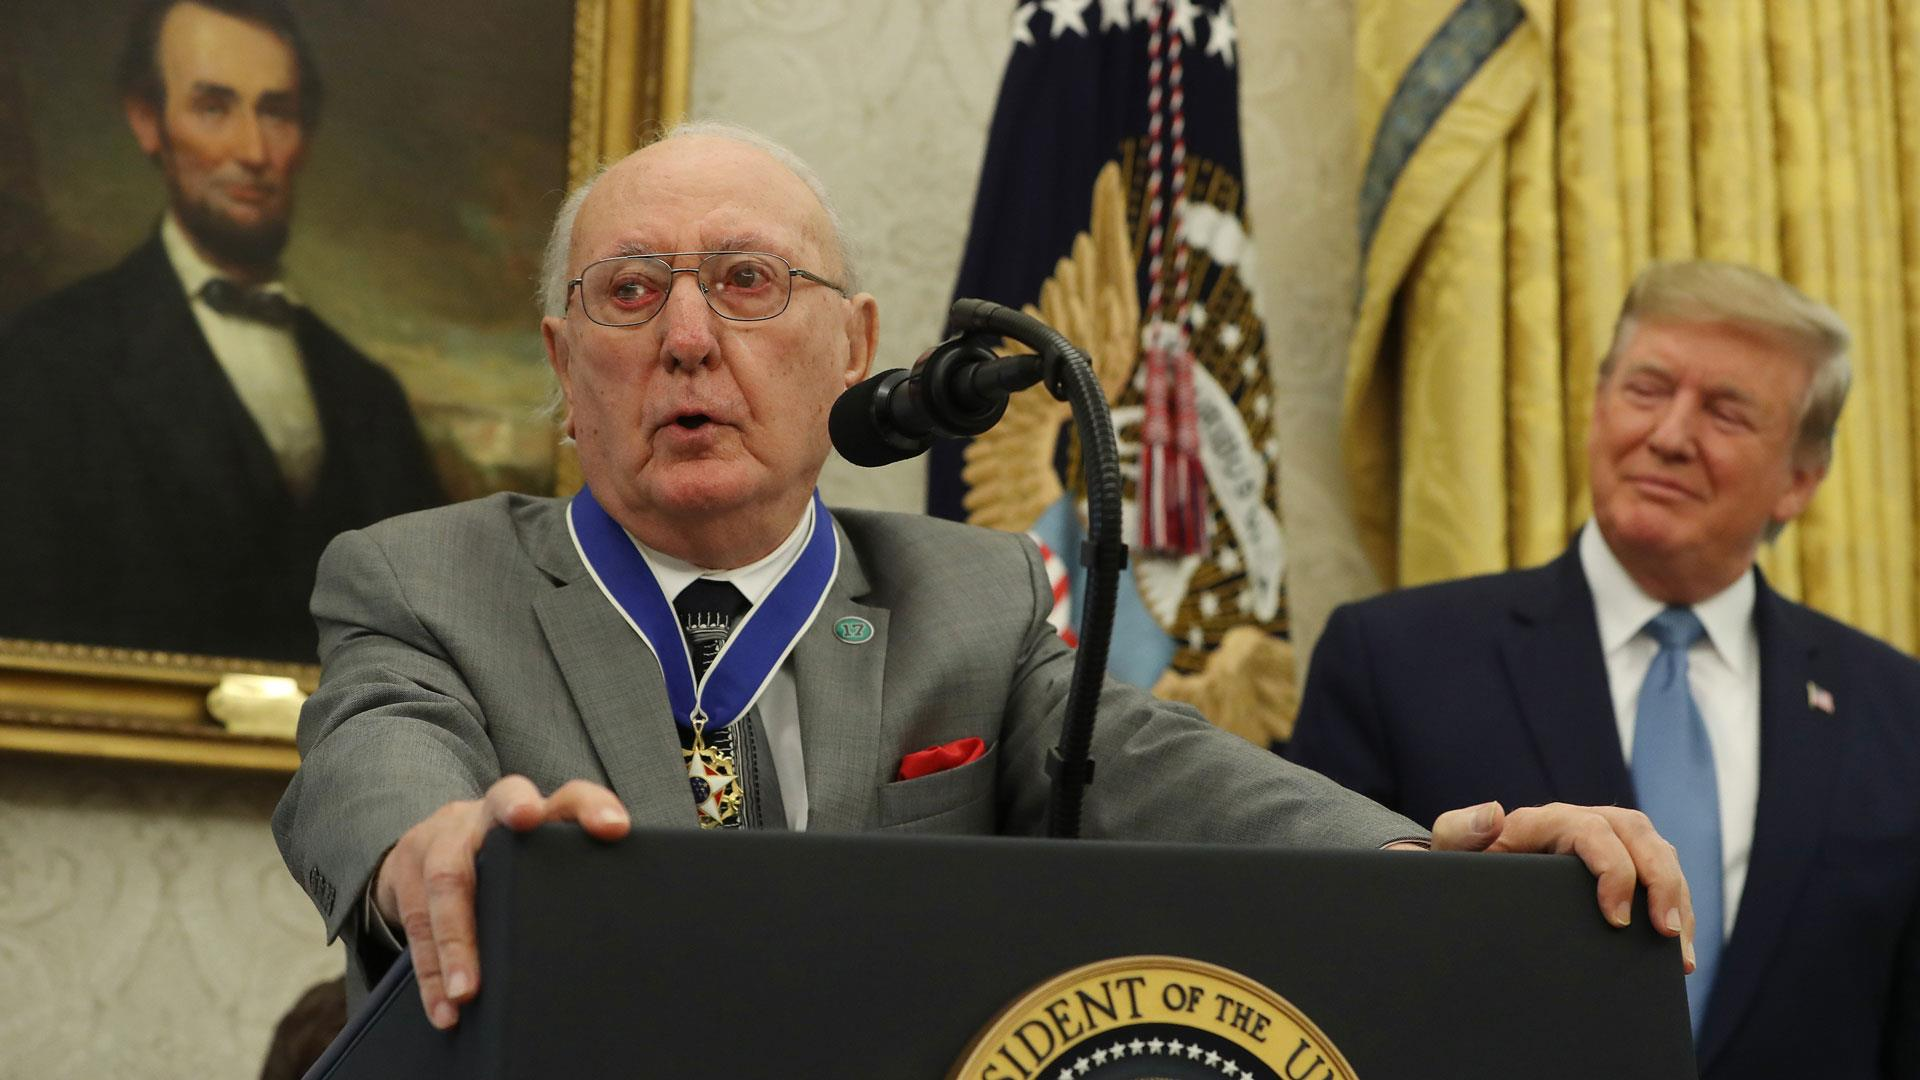 Bob Cousy awarded the Presidential Medal of Freedom at White House